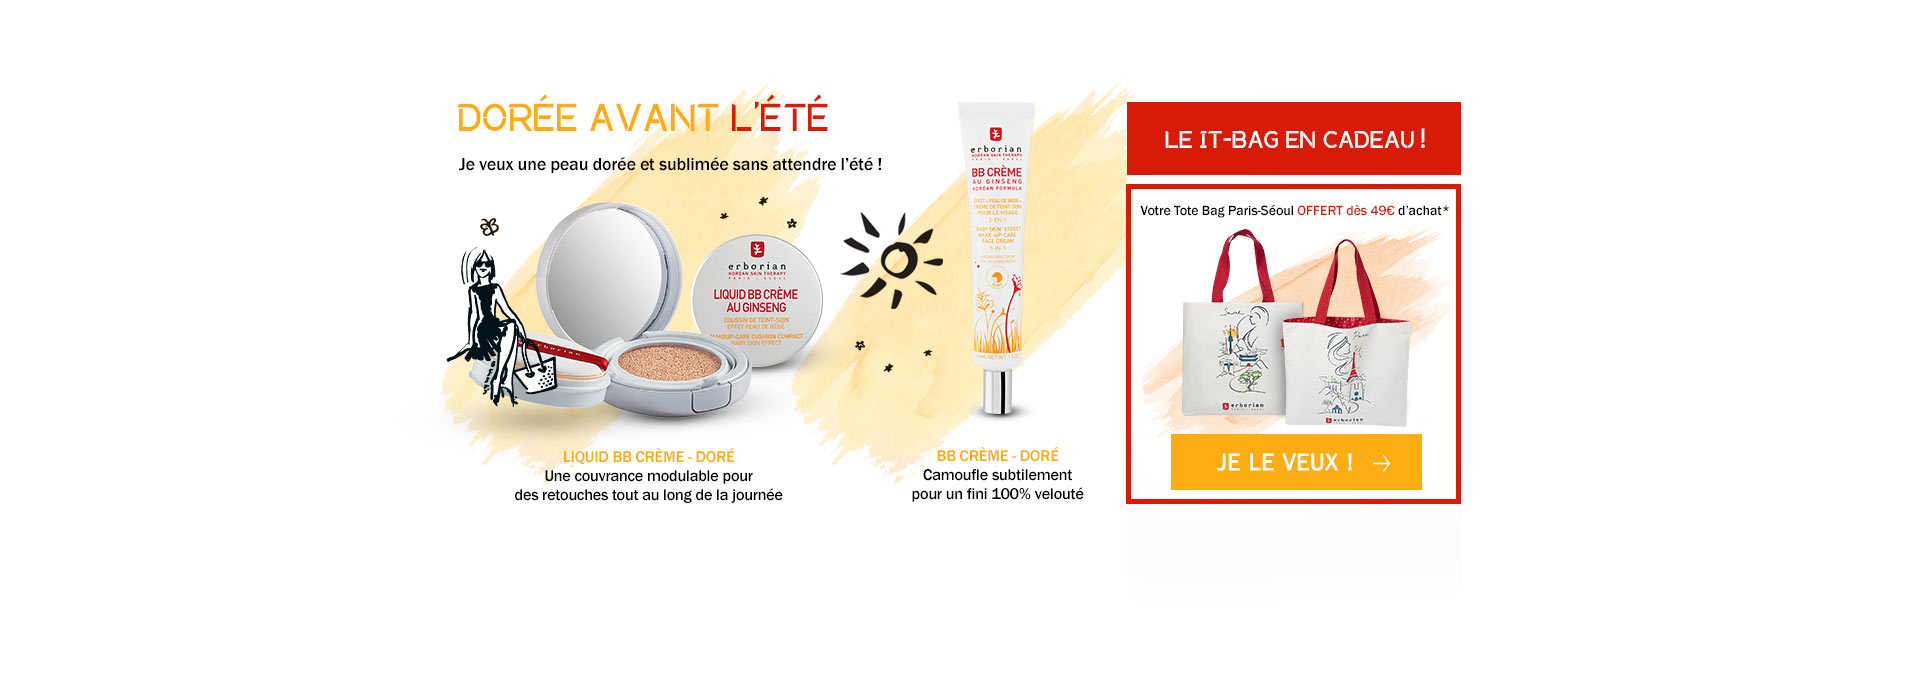 Offre Tote Bag